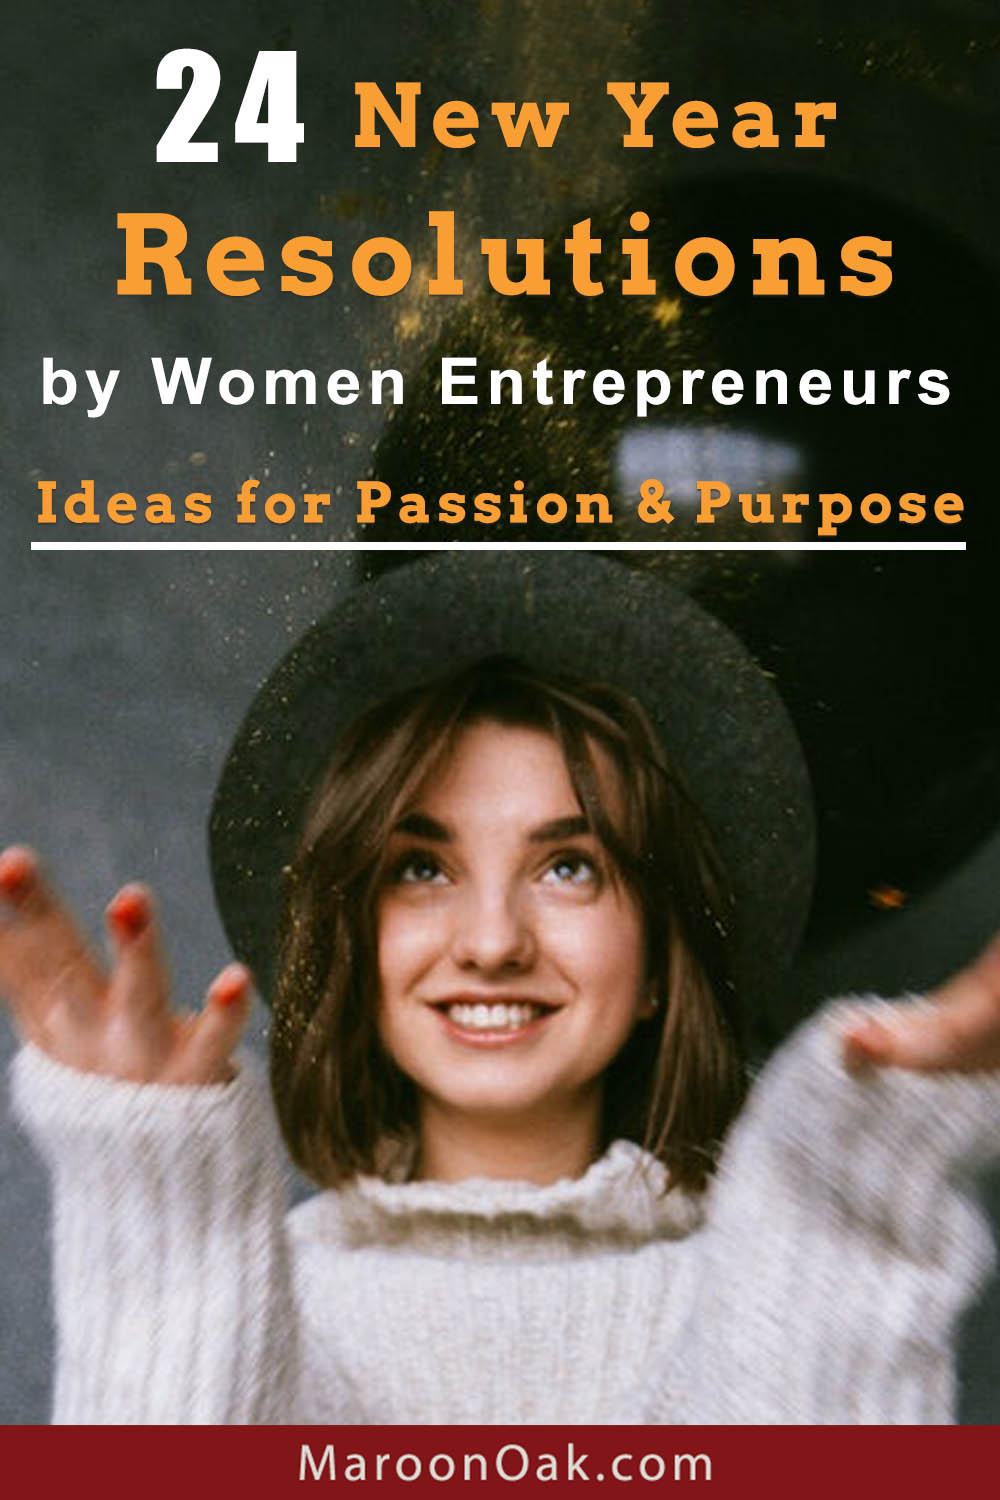 How can our most well-intentioned New Year Resolutions succeed? It's very simple - what truly drives us from within, will ultimately power our actions too! 24 womenpreneurs share their resolutions & reasons on what's inspiring them this year!